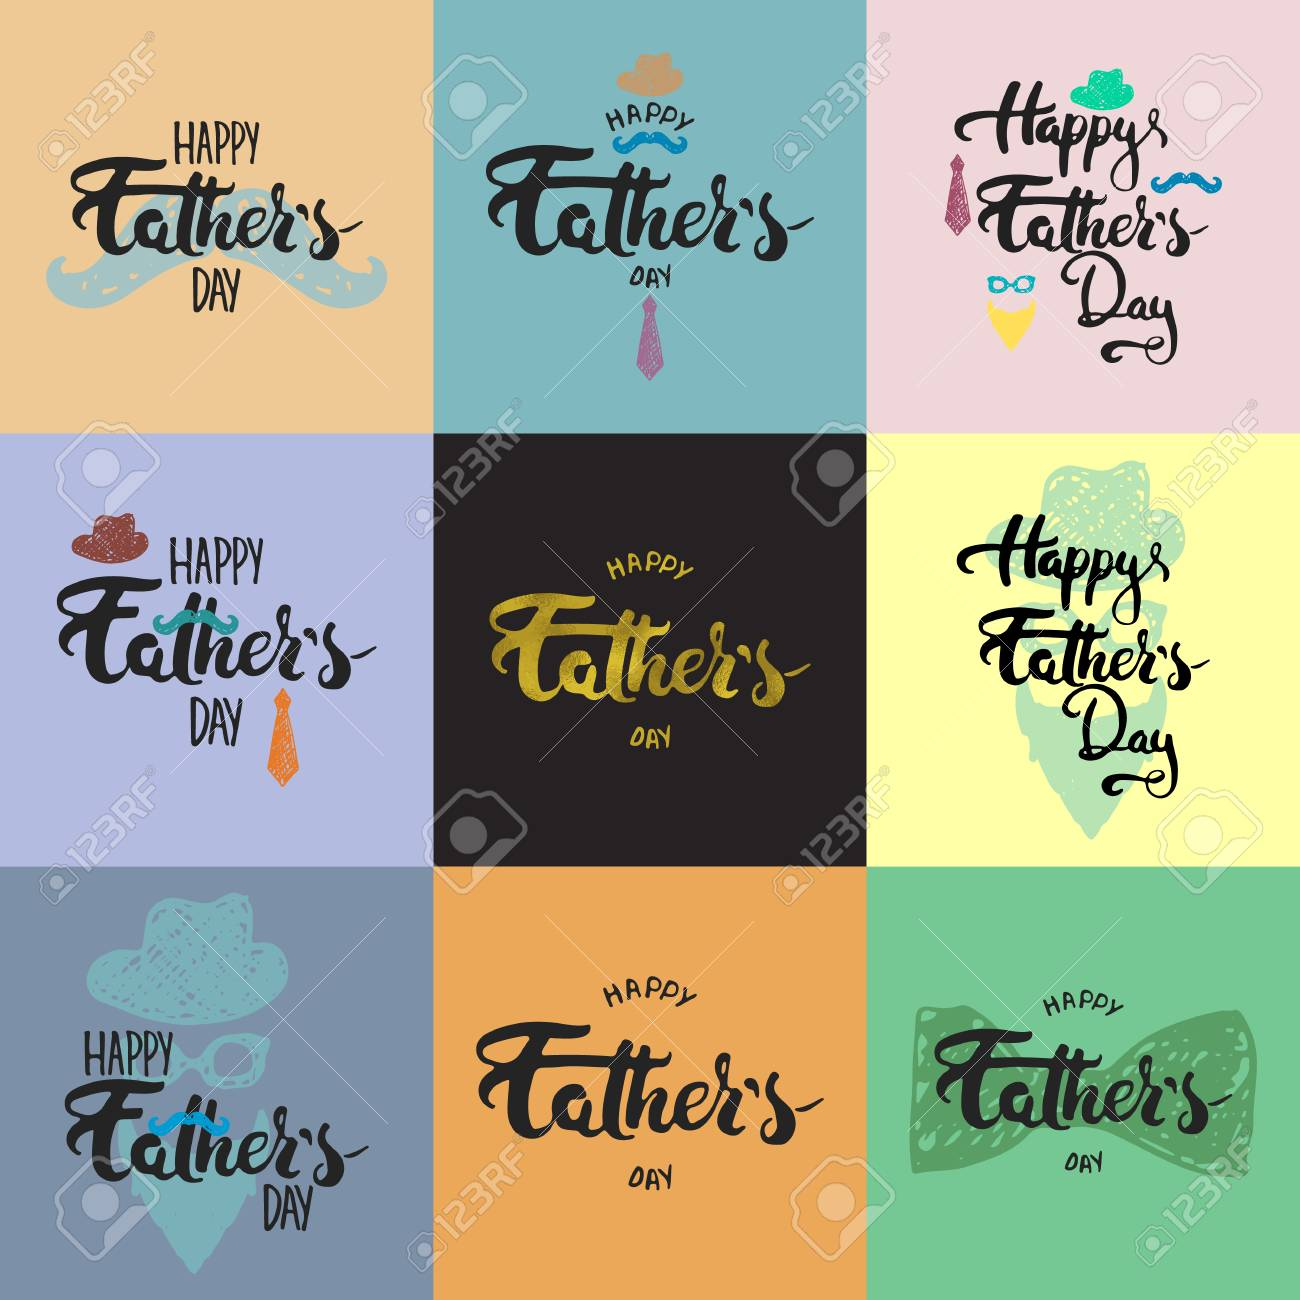 Happy Fathers Day Lettering Calligraphy Greeting Cards Set With